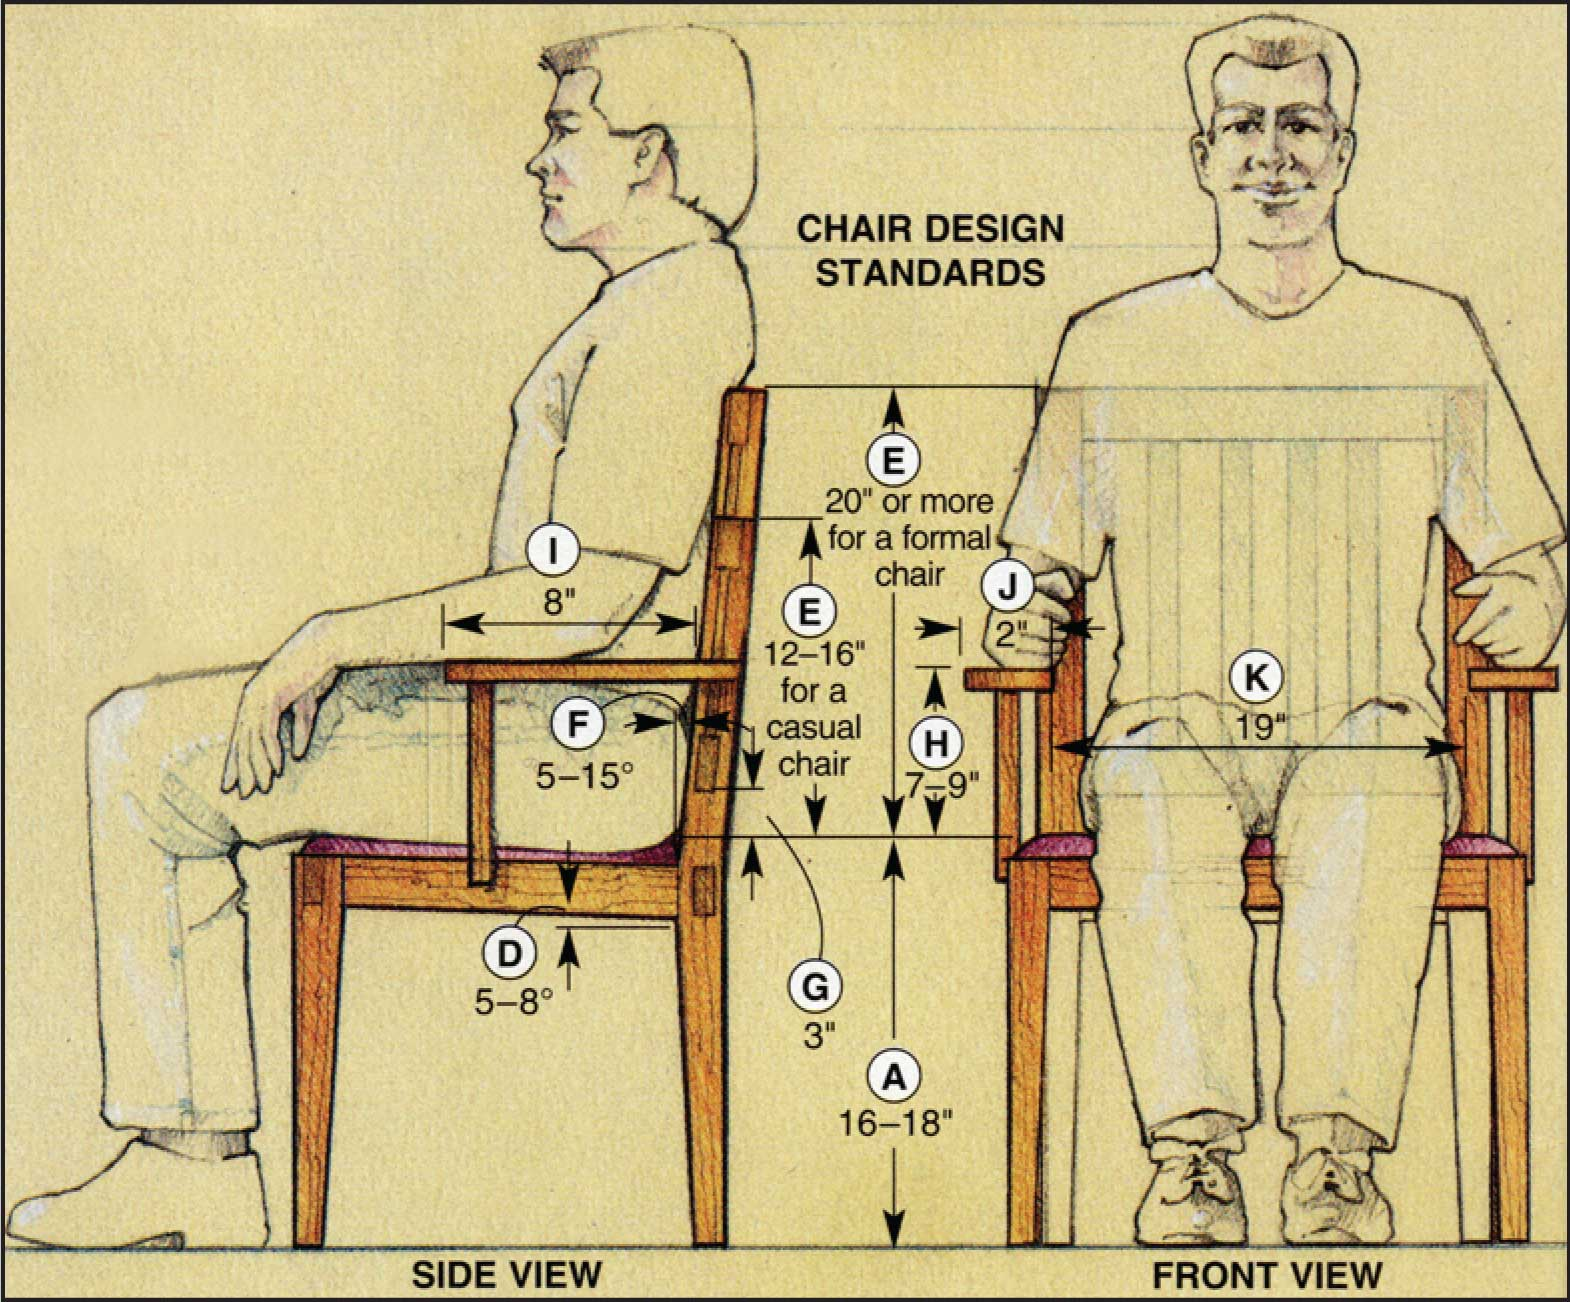 Building a gerrit rietveld chair comfort and ergonomics guidelines and not a precise blueprint for any and all chairs dining chairs are going to be fundamentally different than lounge chairs and so on malvernweather Gallery